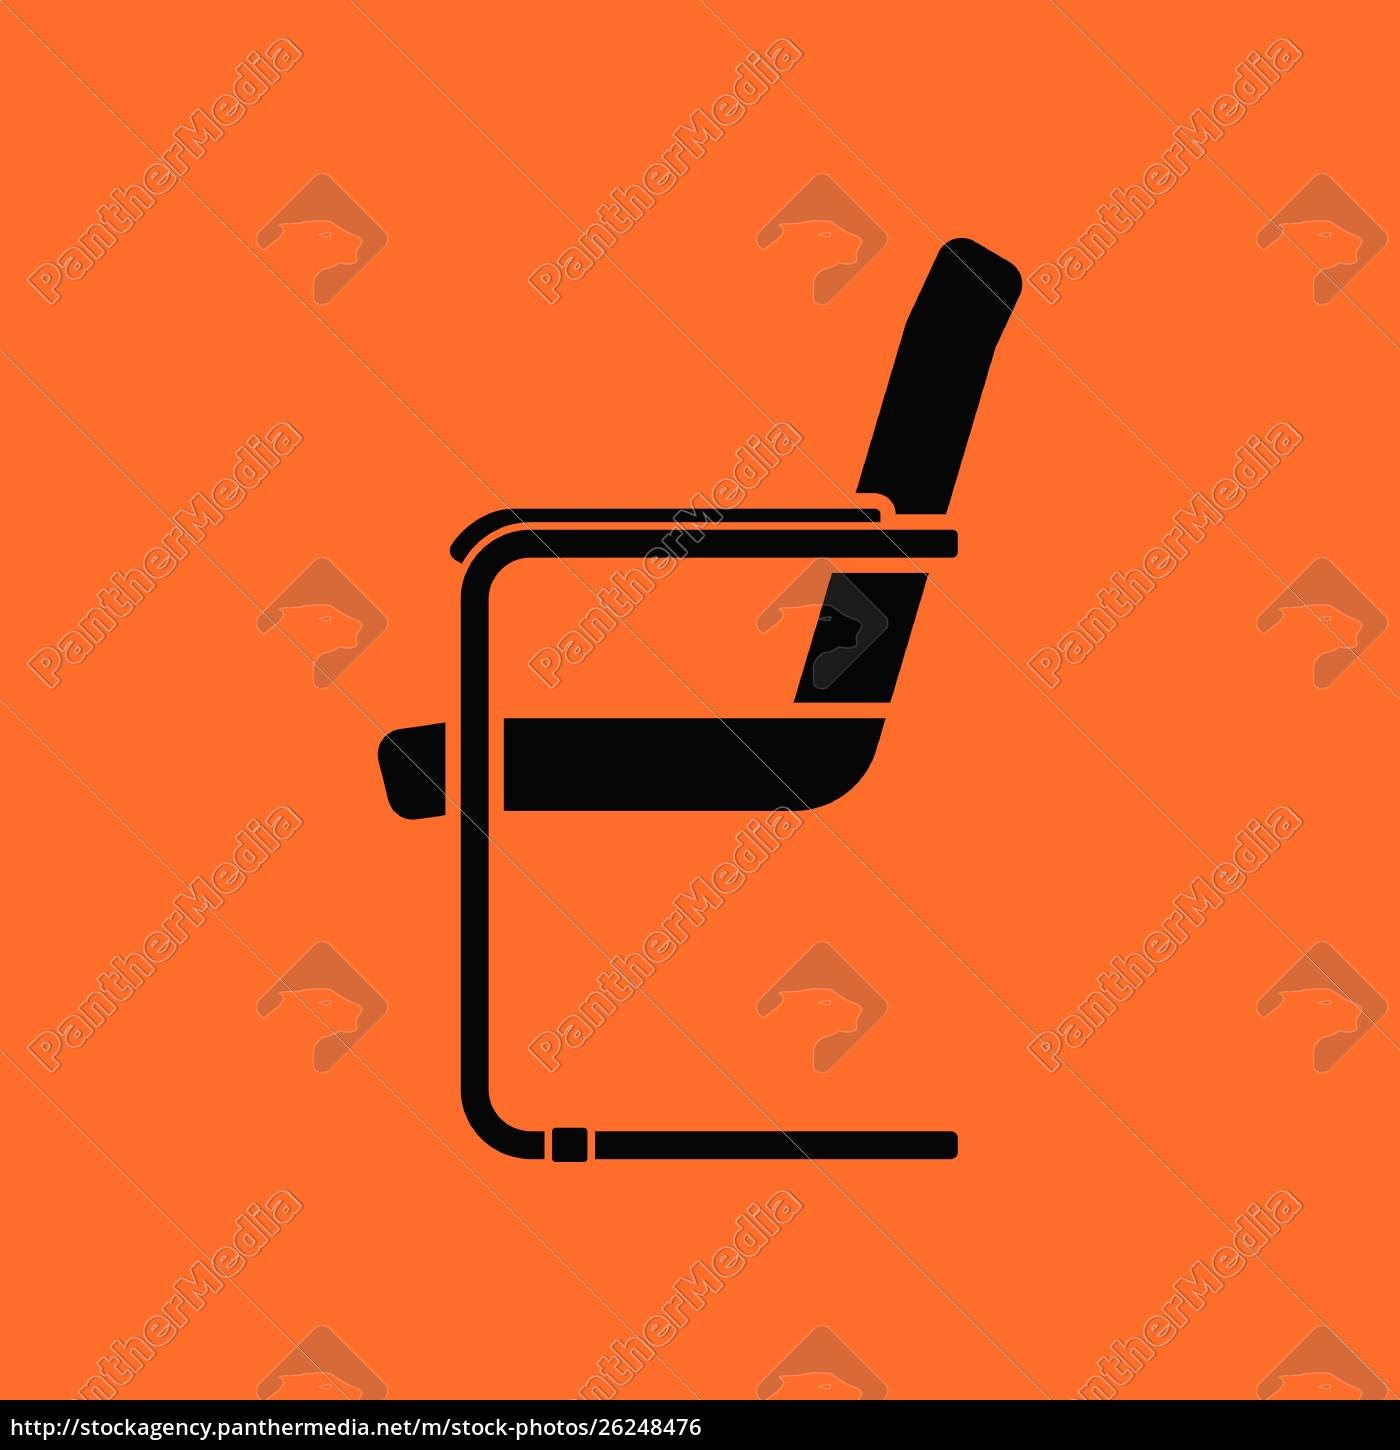 guest, office, chair, icon., orange, background - 26248476